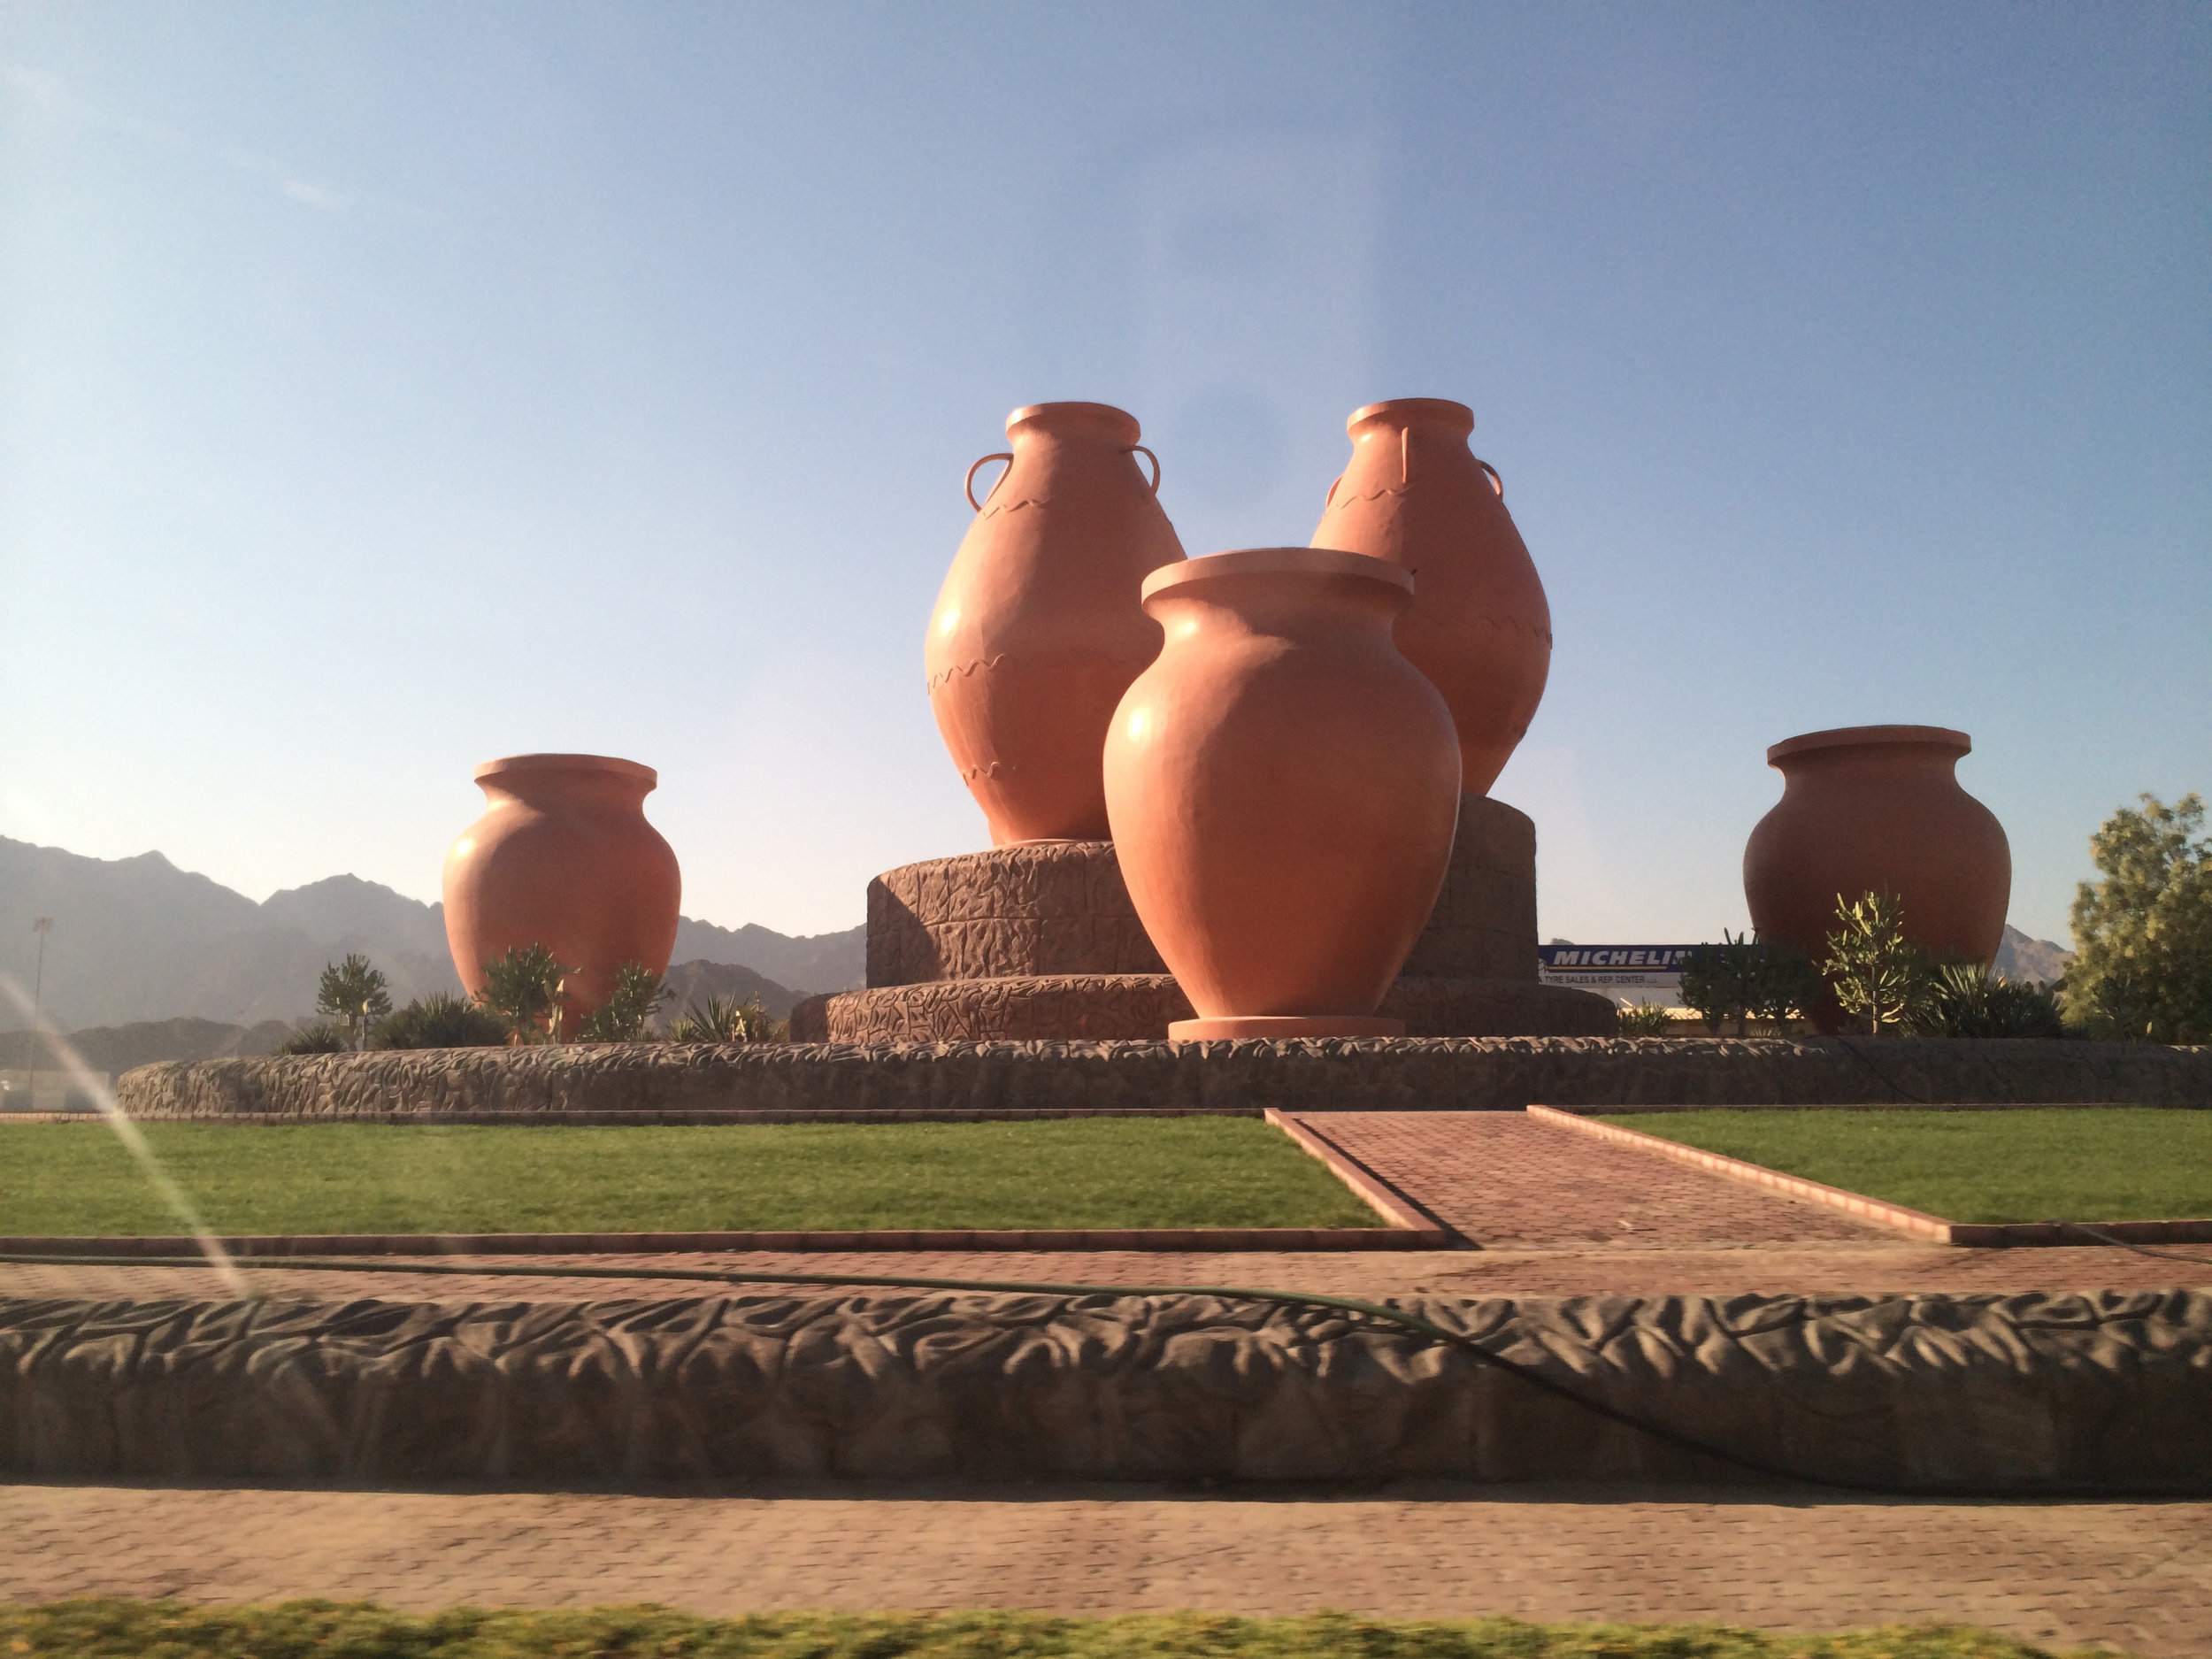 These giant clay pots were our marker on the way to the Oman border crossing in  Fujairah.